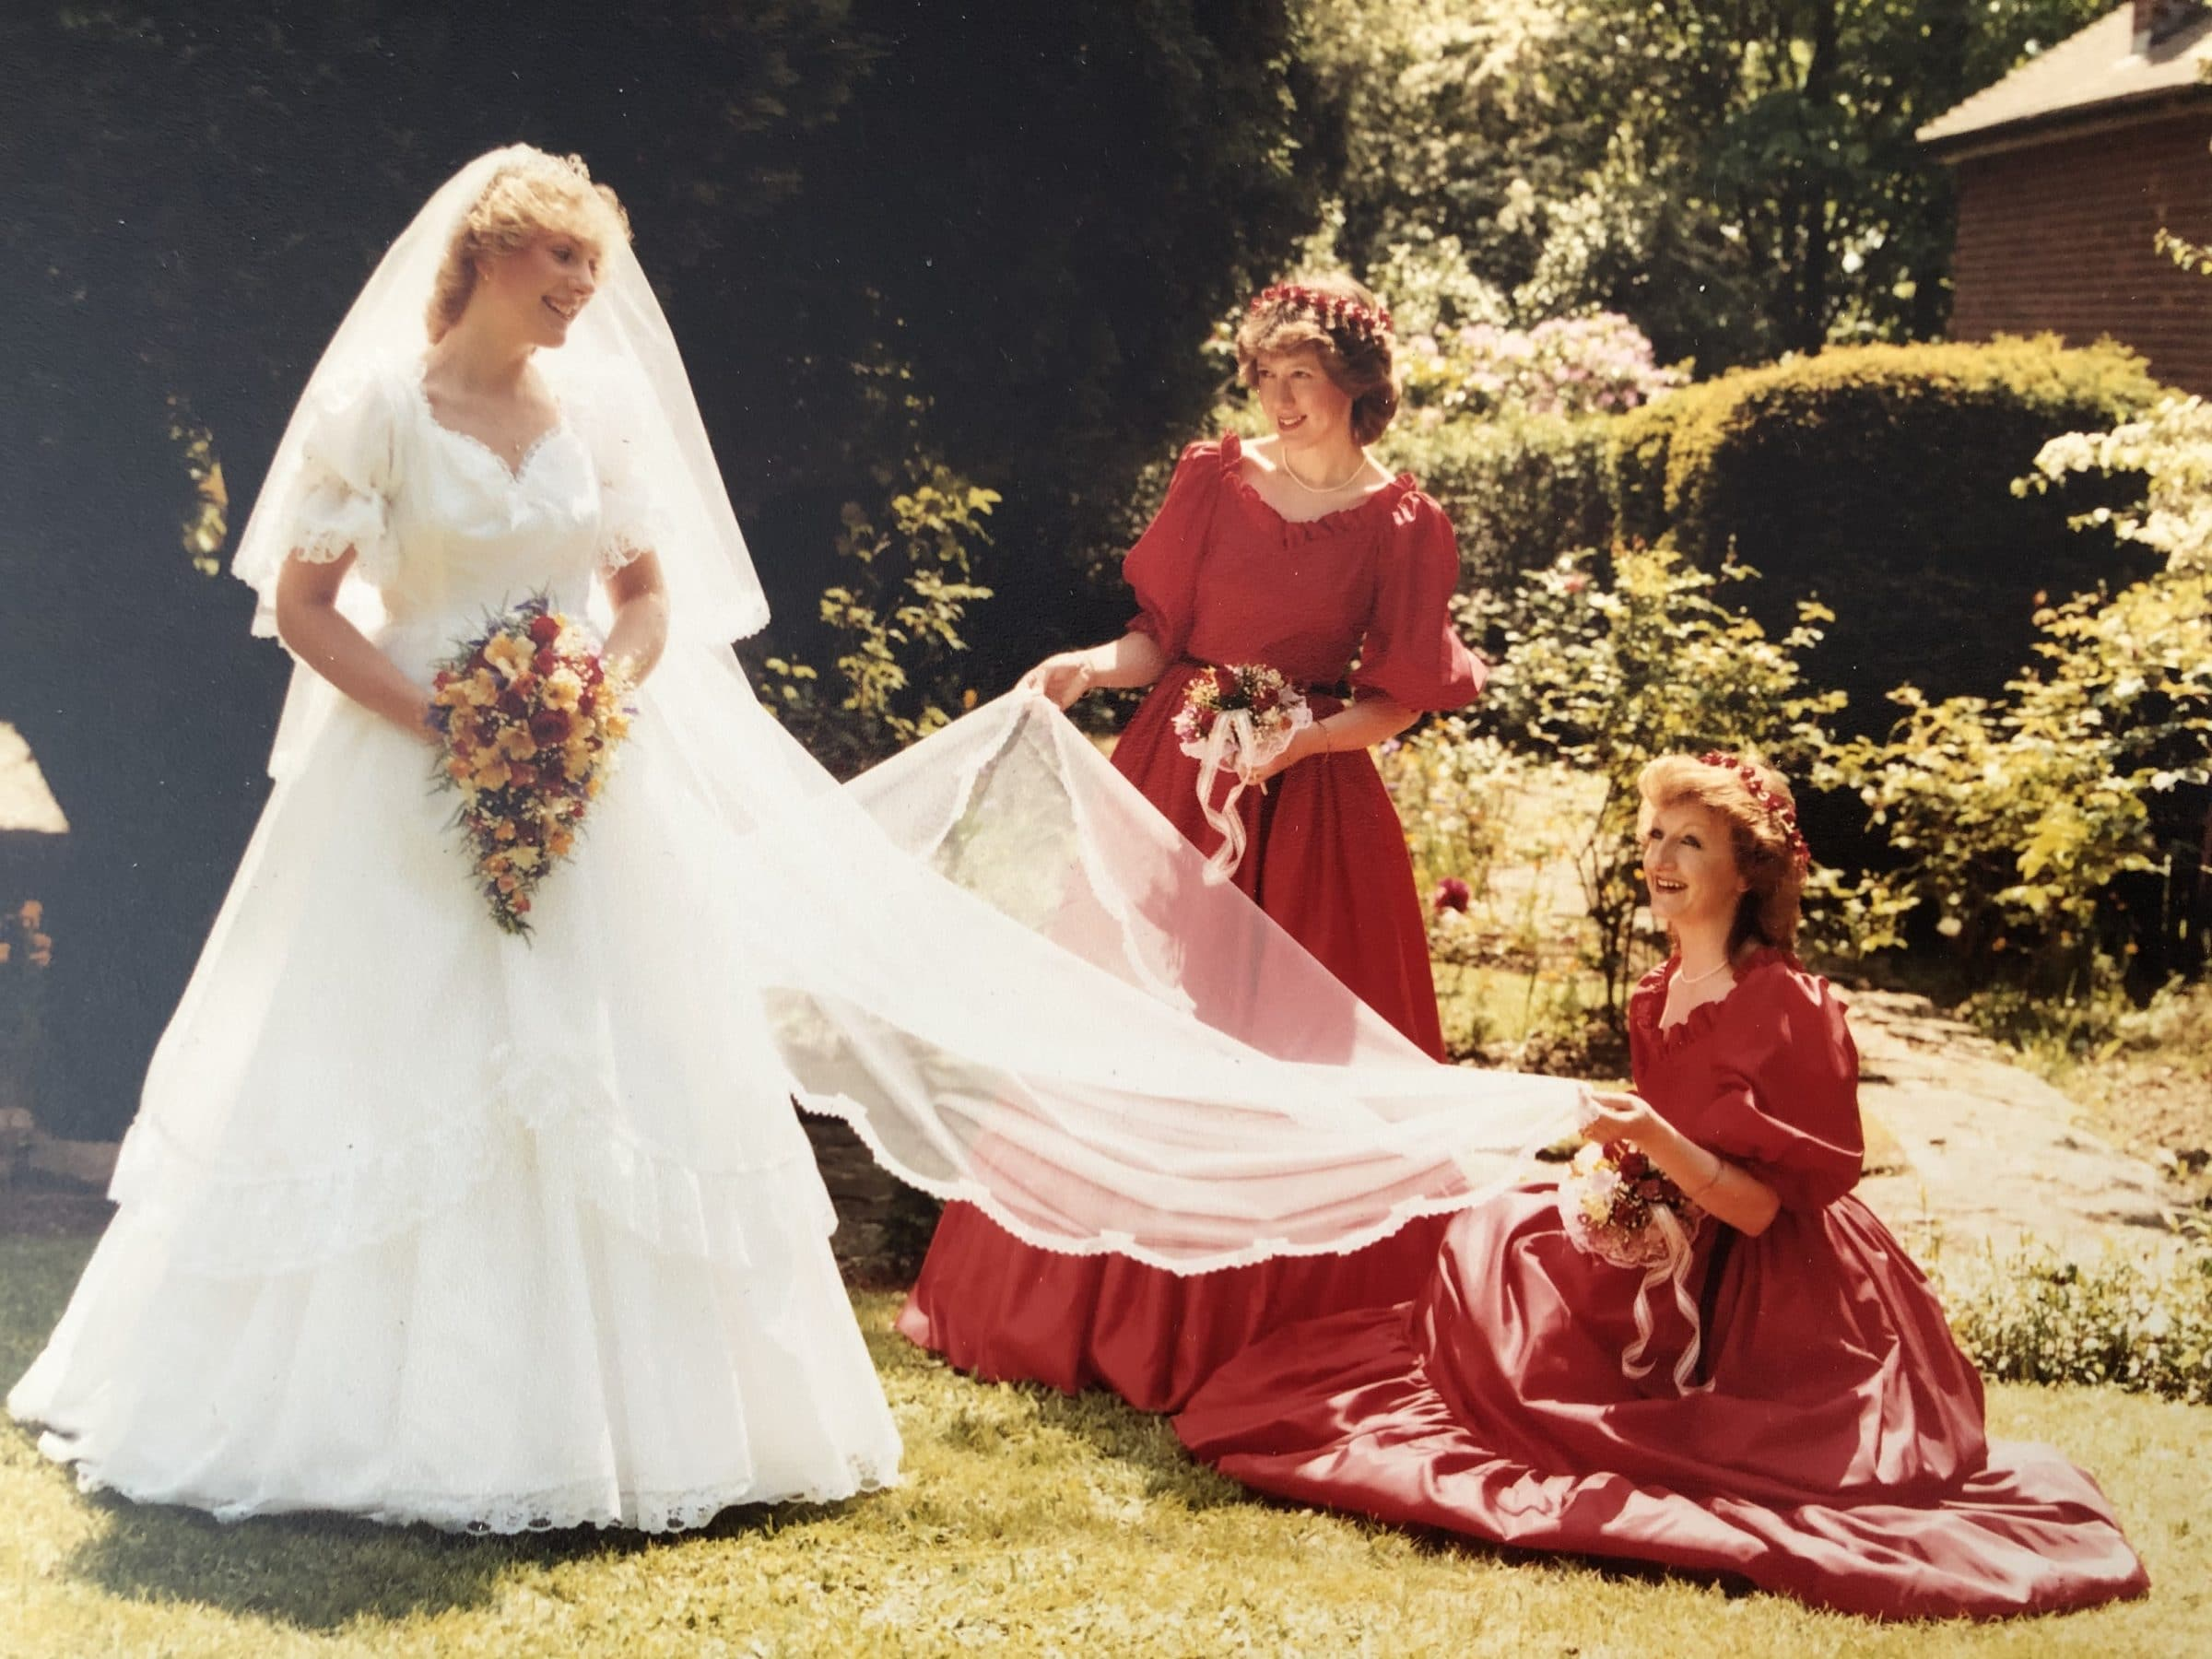 Fiona and two bridesmaids, 1st June 1985